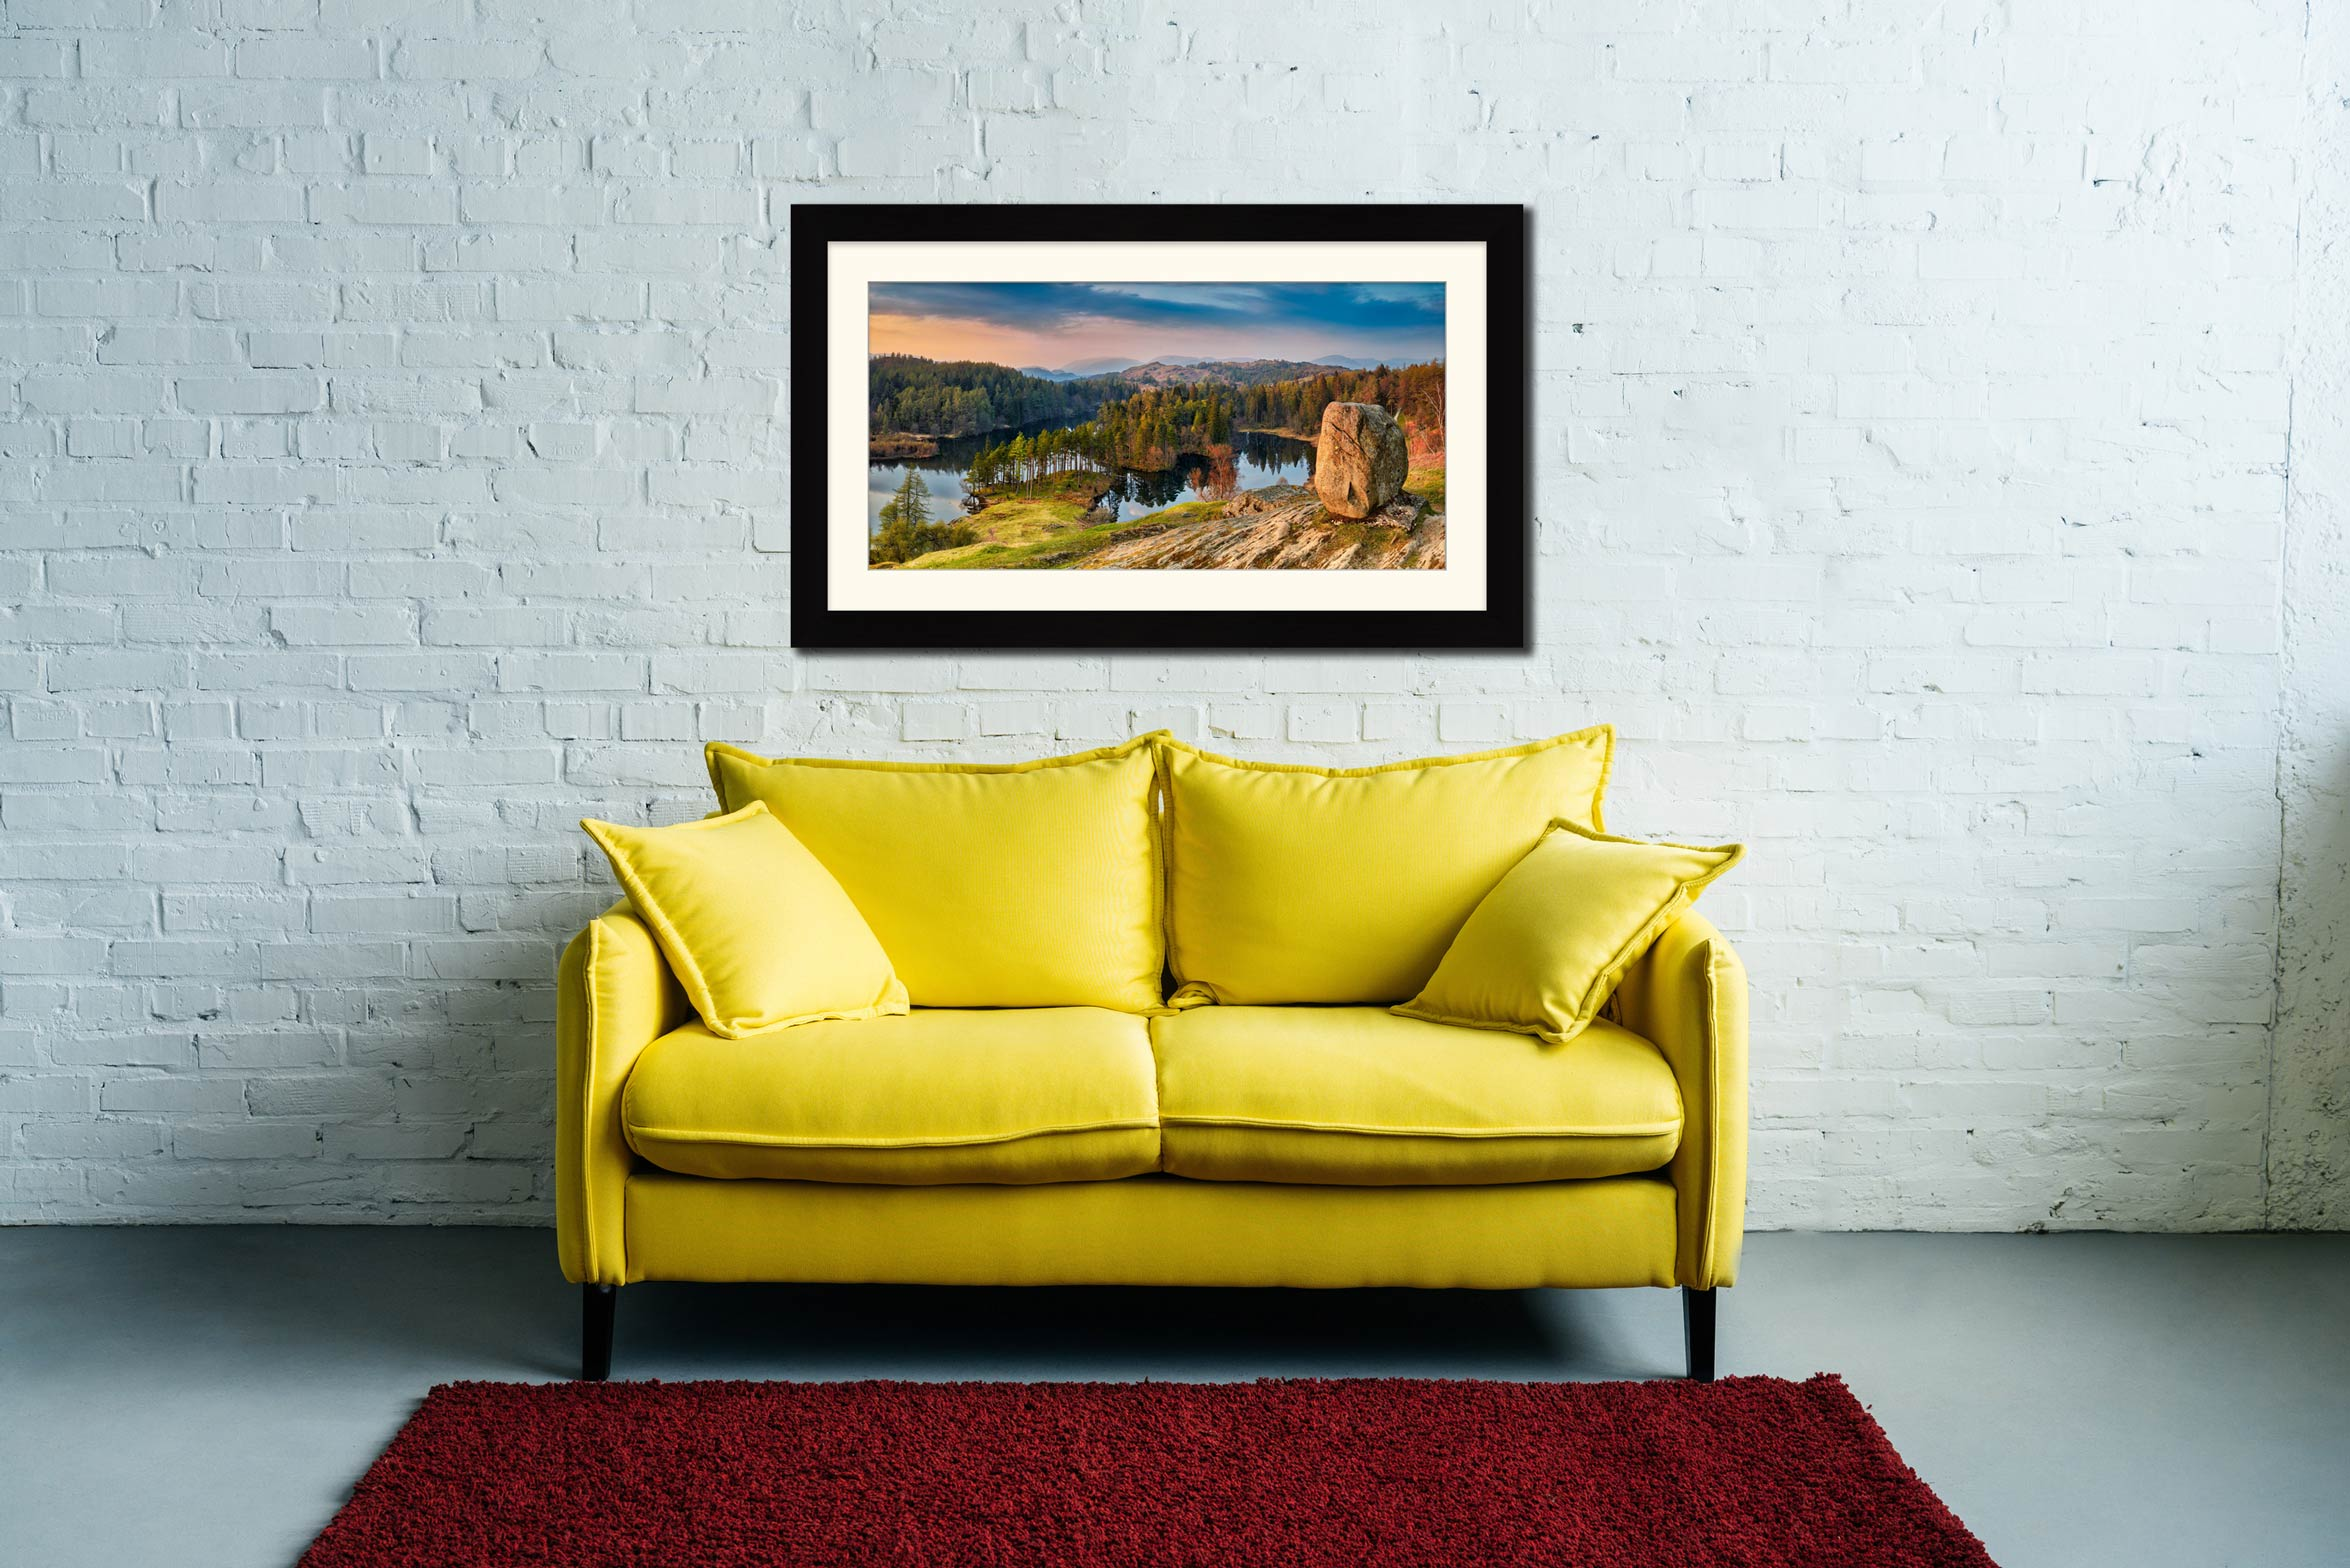 Dusk at Tarn Hows - Framed Print with Mount on Wall